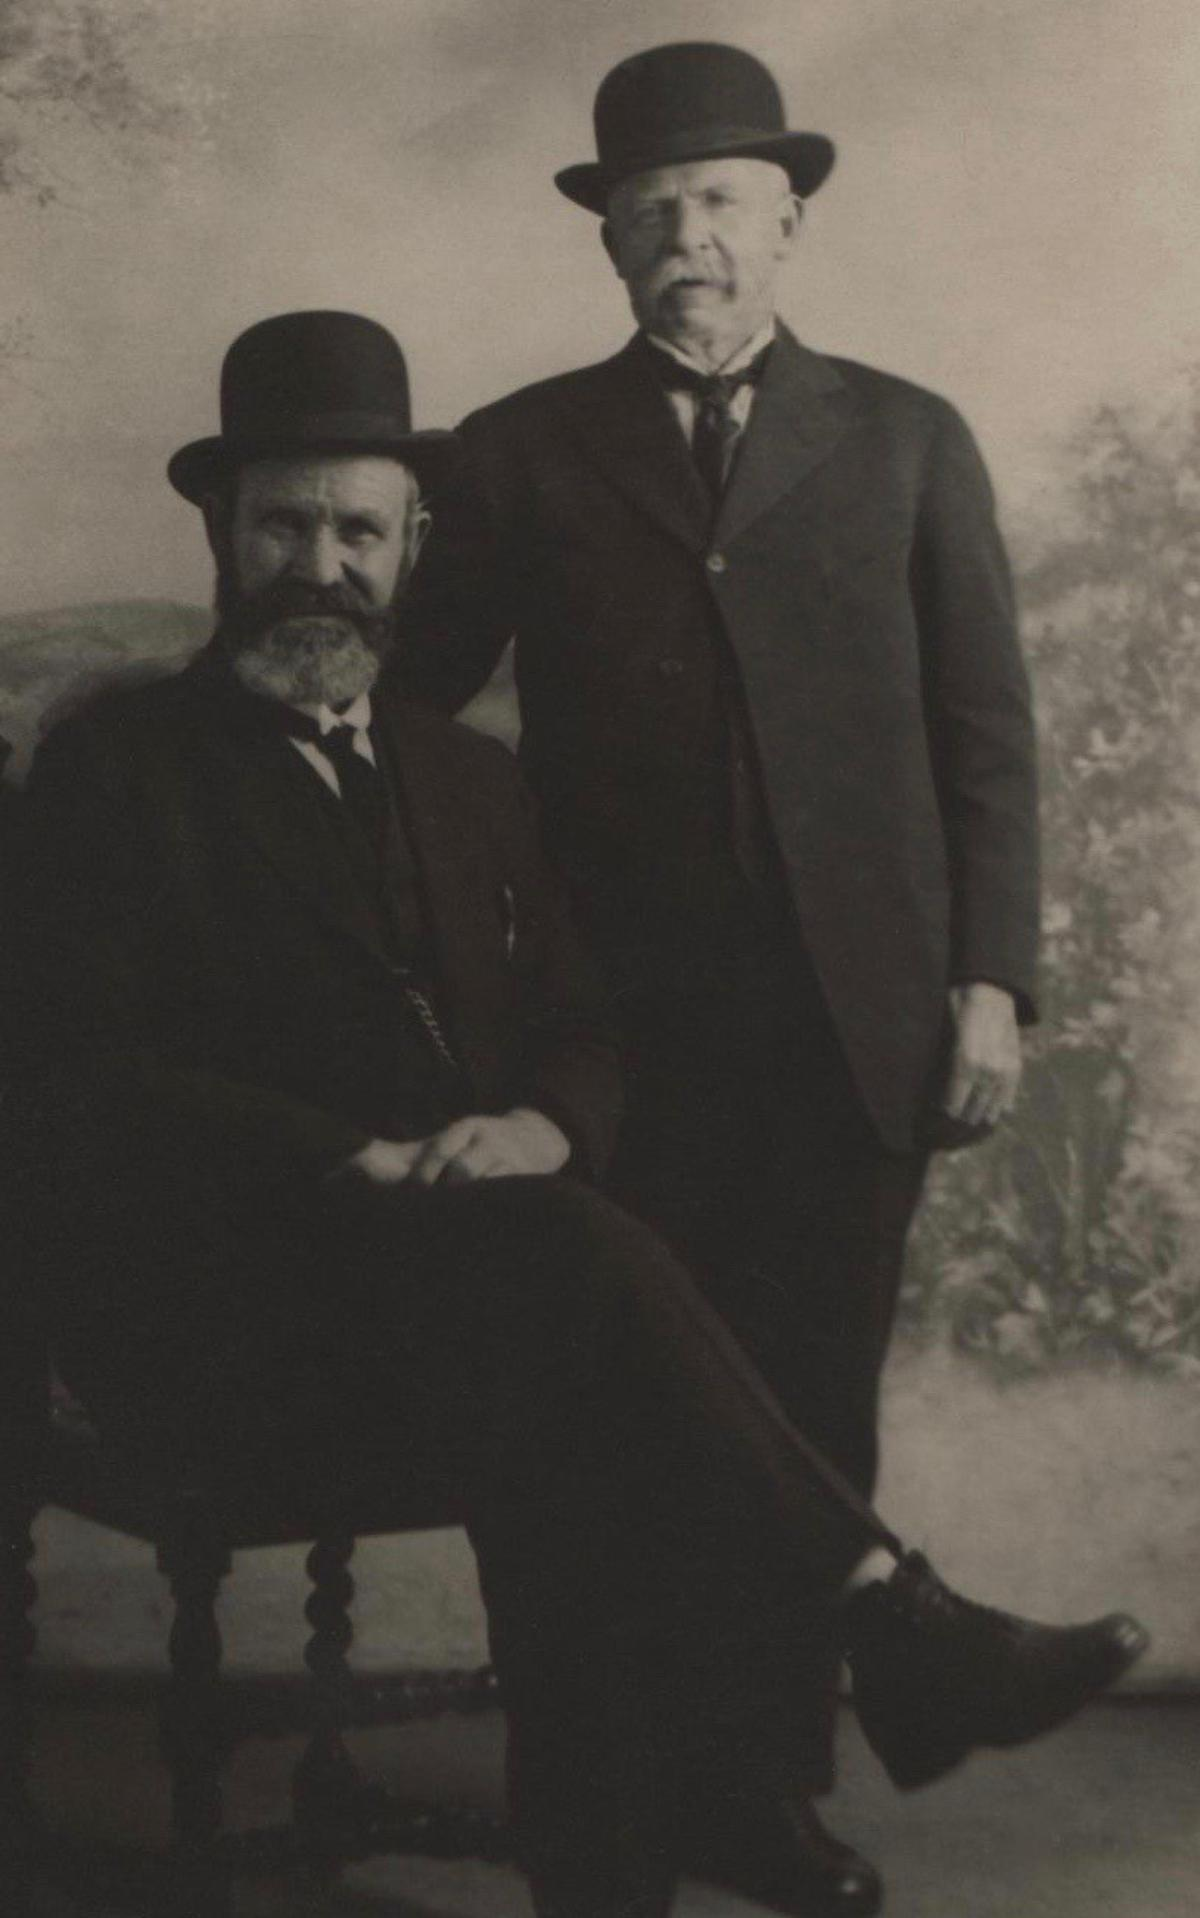 Elder Finlayson (left) and Elder Ingles (right)